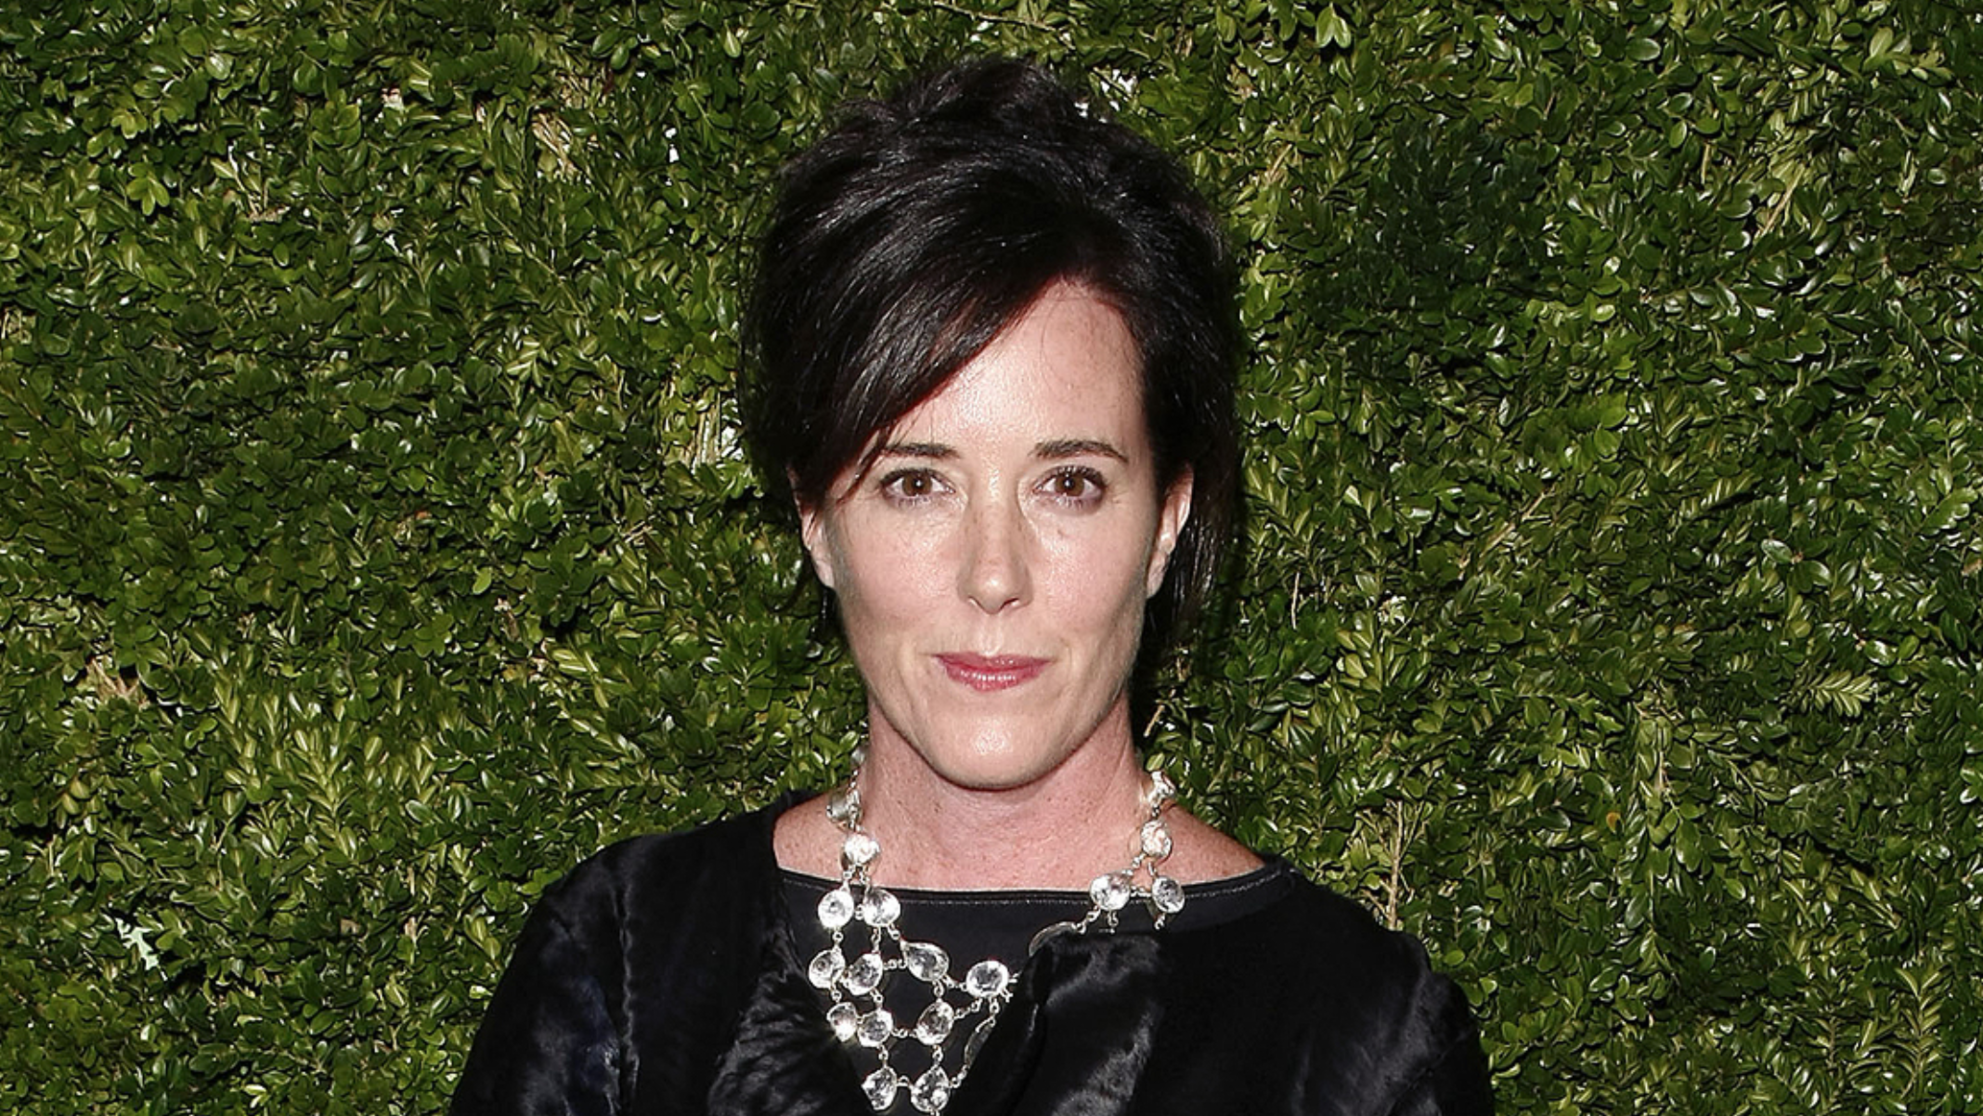 Kate Spade's Sister Speaks Out After Suicide to Reveal the Designer's Struggles with Common Mental Health Conditions